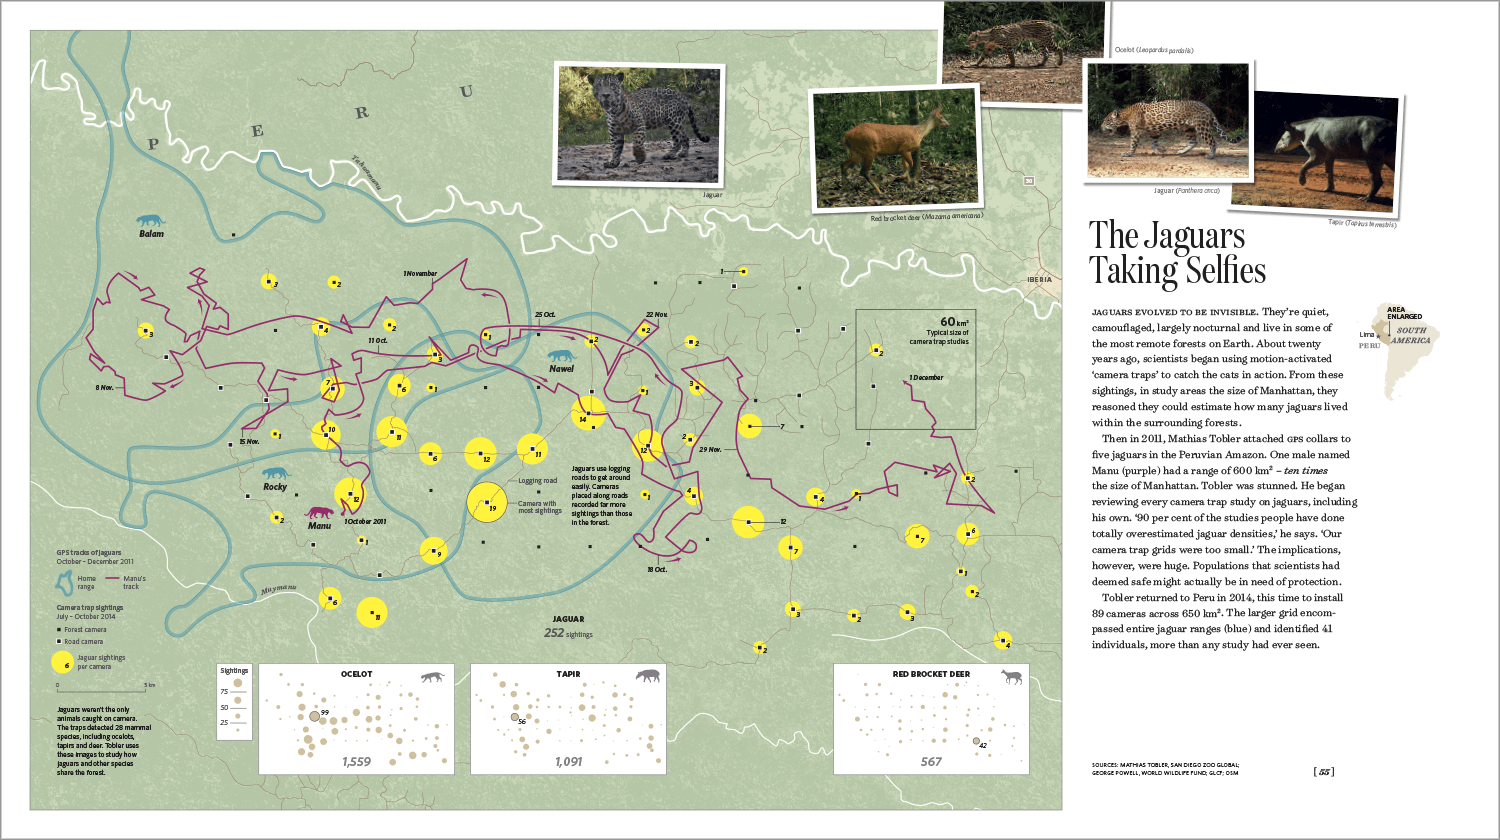 On this map, we show a grid of 89 camera traps that Mathias Tobler (San Diego Zoo Global) used to detect jaguars in the Peruvian Amazon. Yellow circles indicate the number of jaguar sightings at each camera; blue contours show the extent of individual jaguar ranges within the 650 km2 grid.